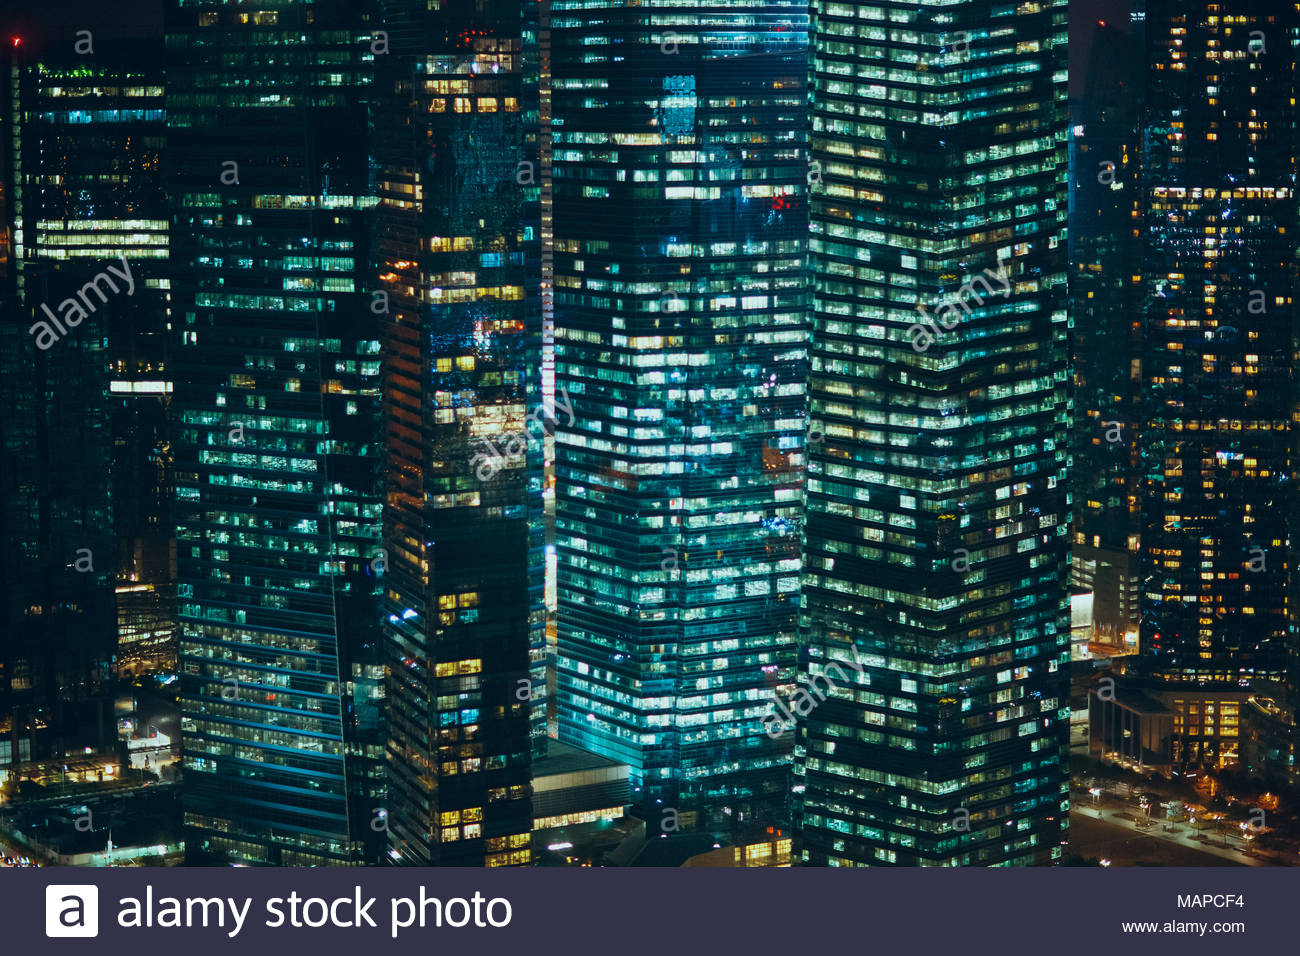 Abstract night skyscrapers background Stock Photo 178743016   Alamy 1300x956